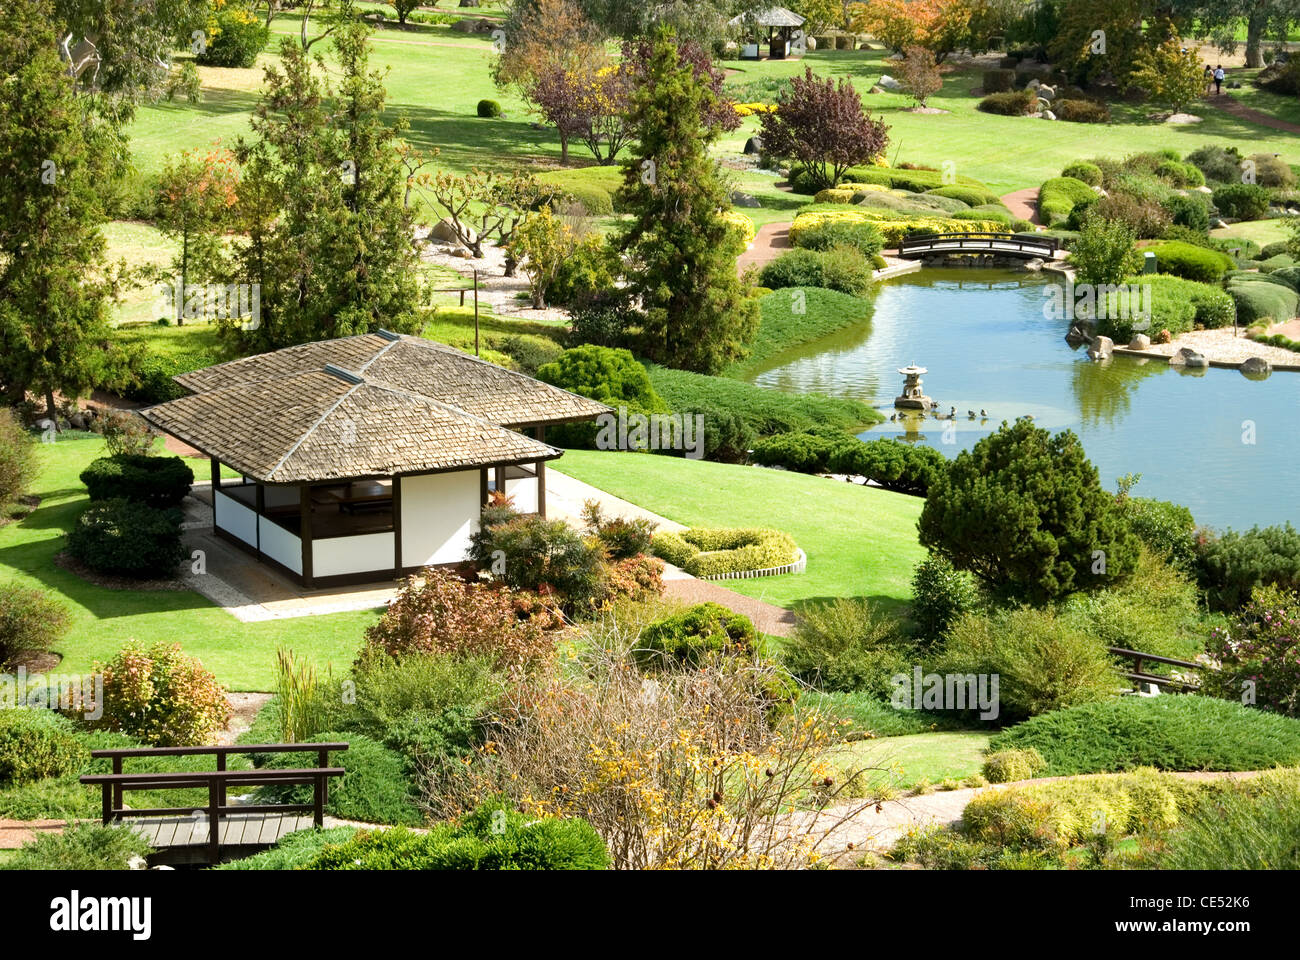 A scene from the Cowra Japanese Gardens, New South Wales, Australia - Stock Image